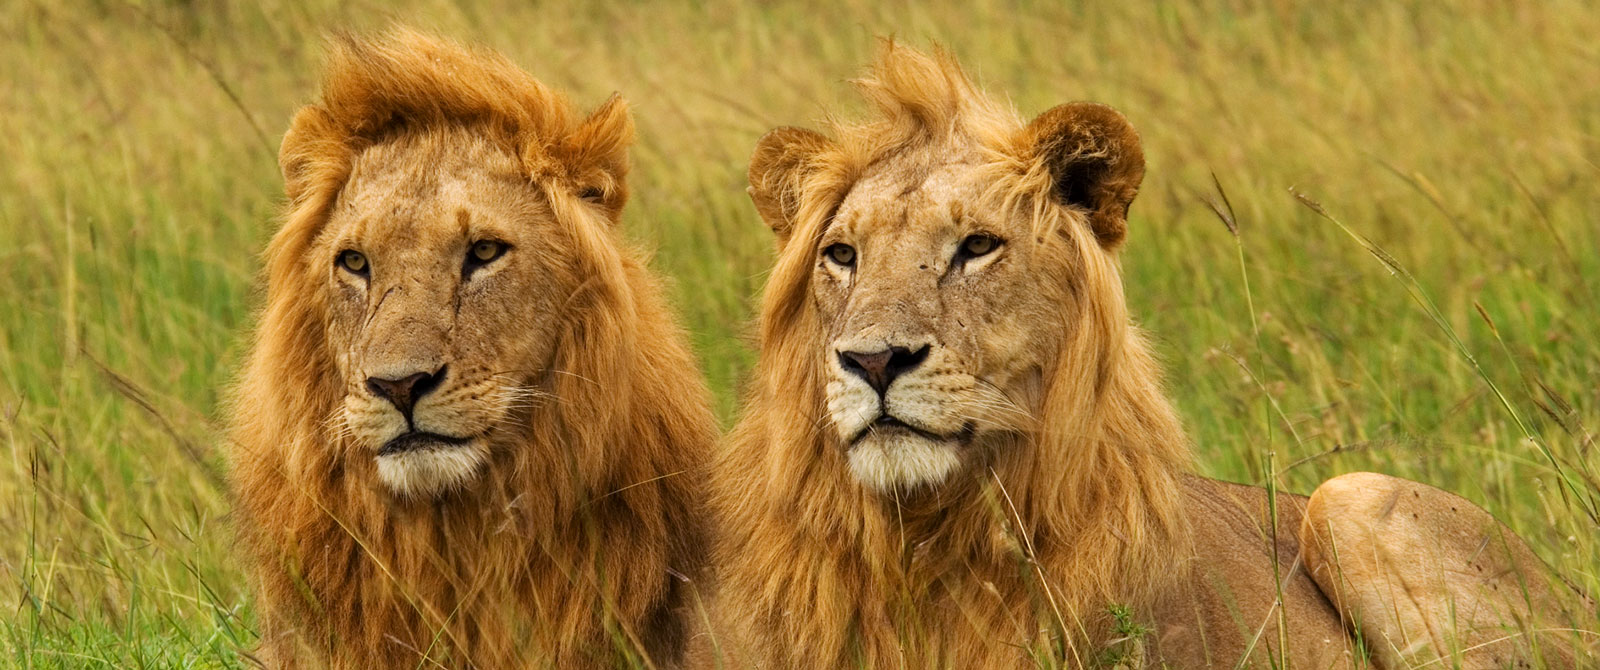 Lions on Safari from Karen Blixen Camp - Masai Mara National Reserve Kenya - Luxury Air Safari: Kenya Adventure Package